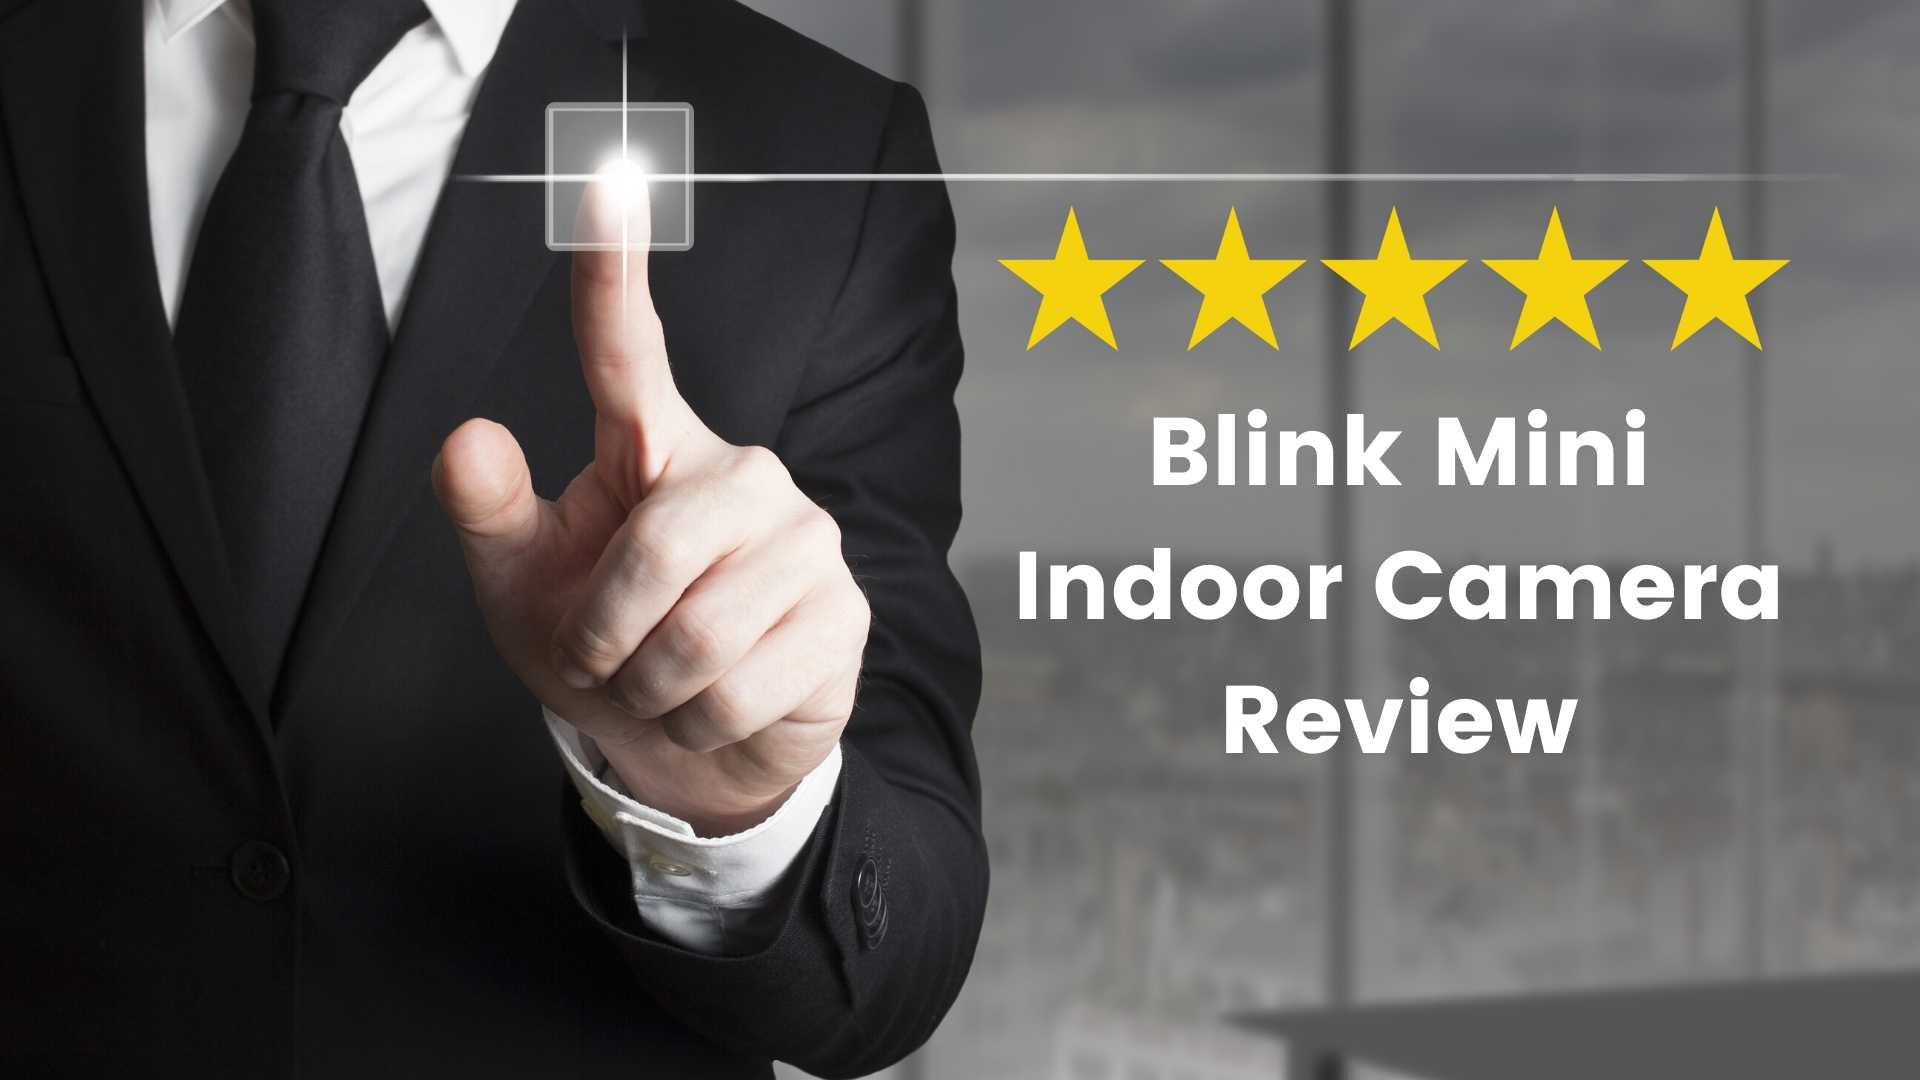 Blink Mini Indoor Camera Review